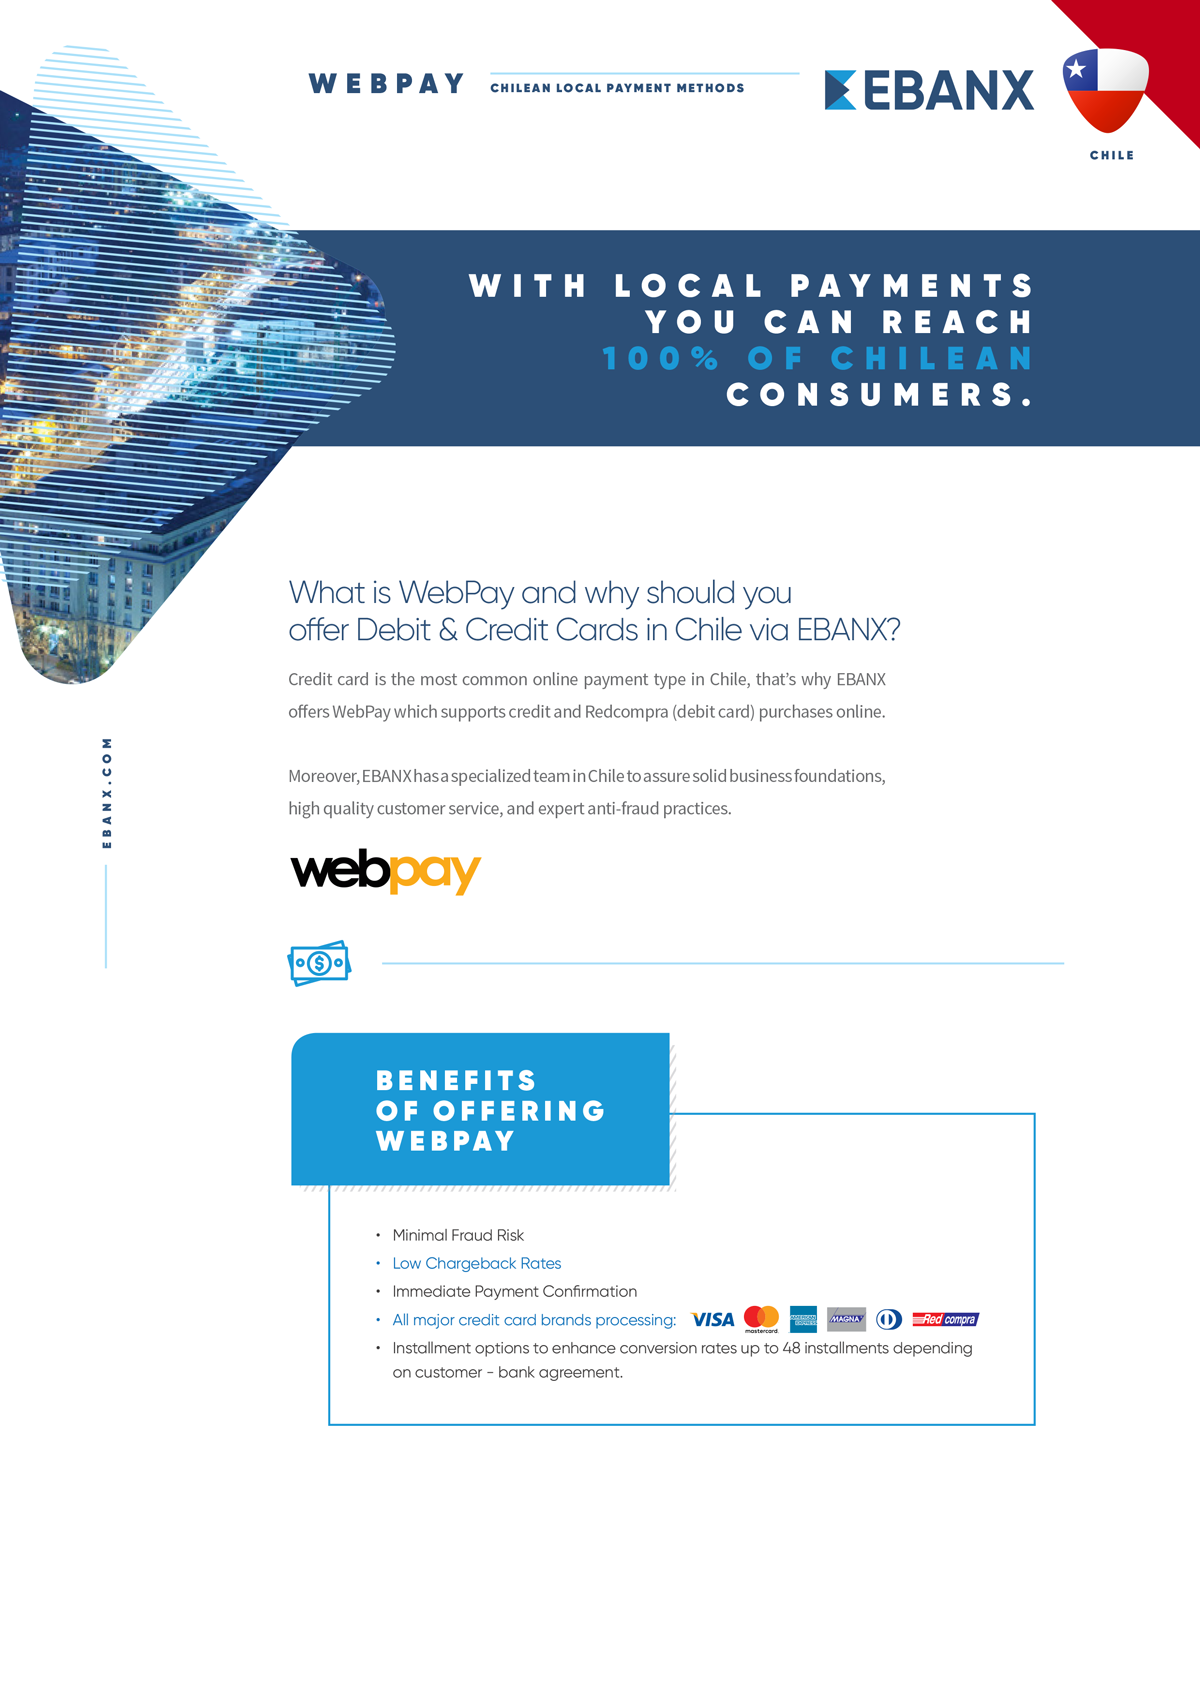 EBANX White Papers - Chile WebPay